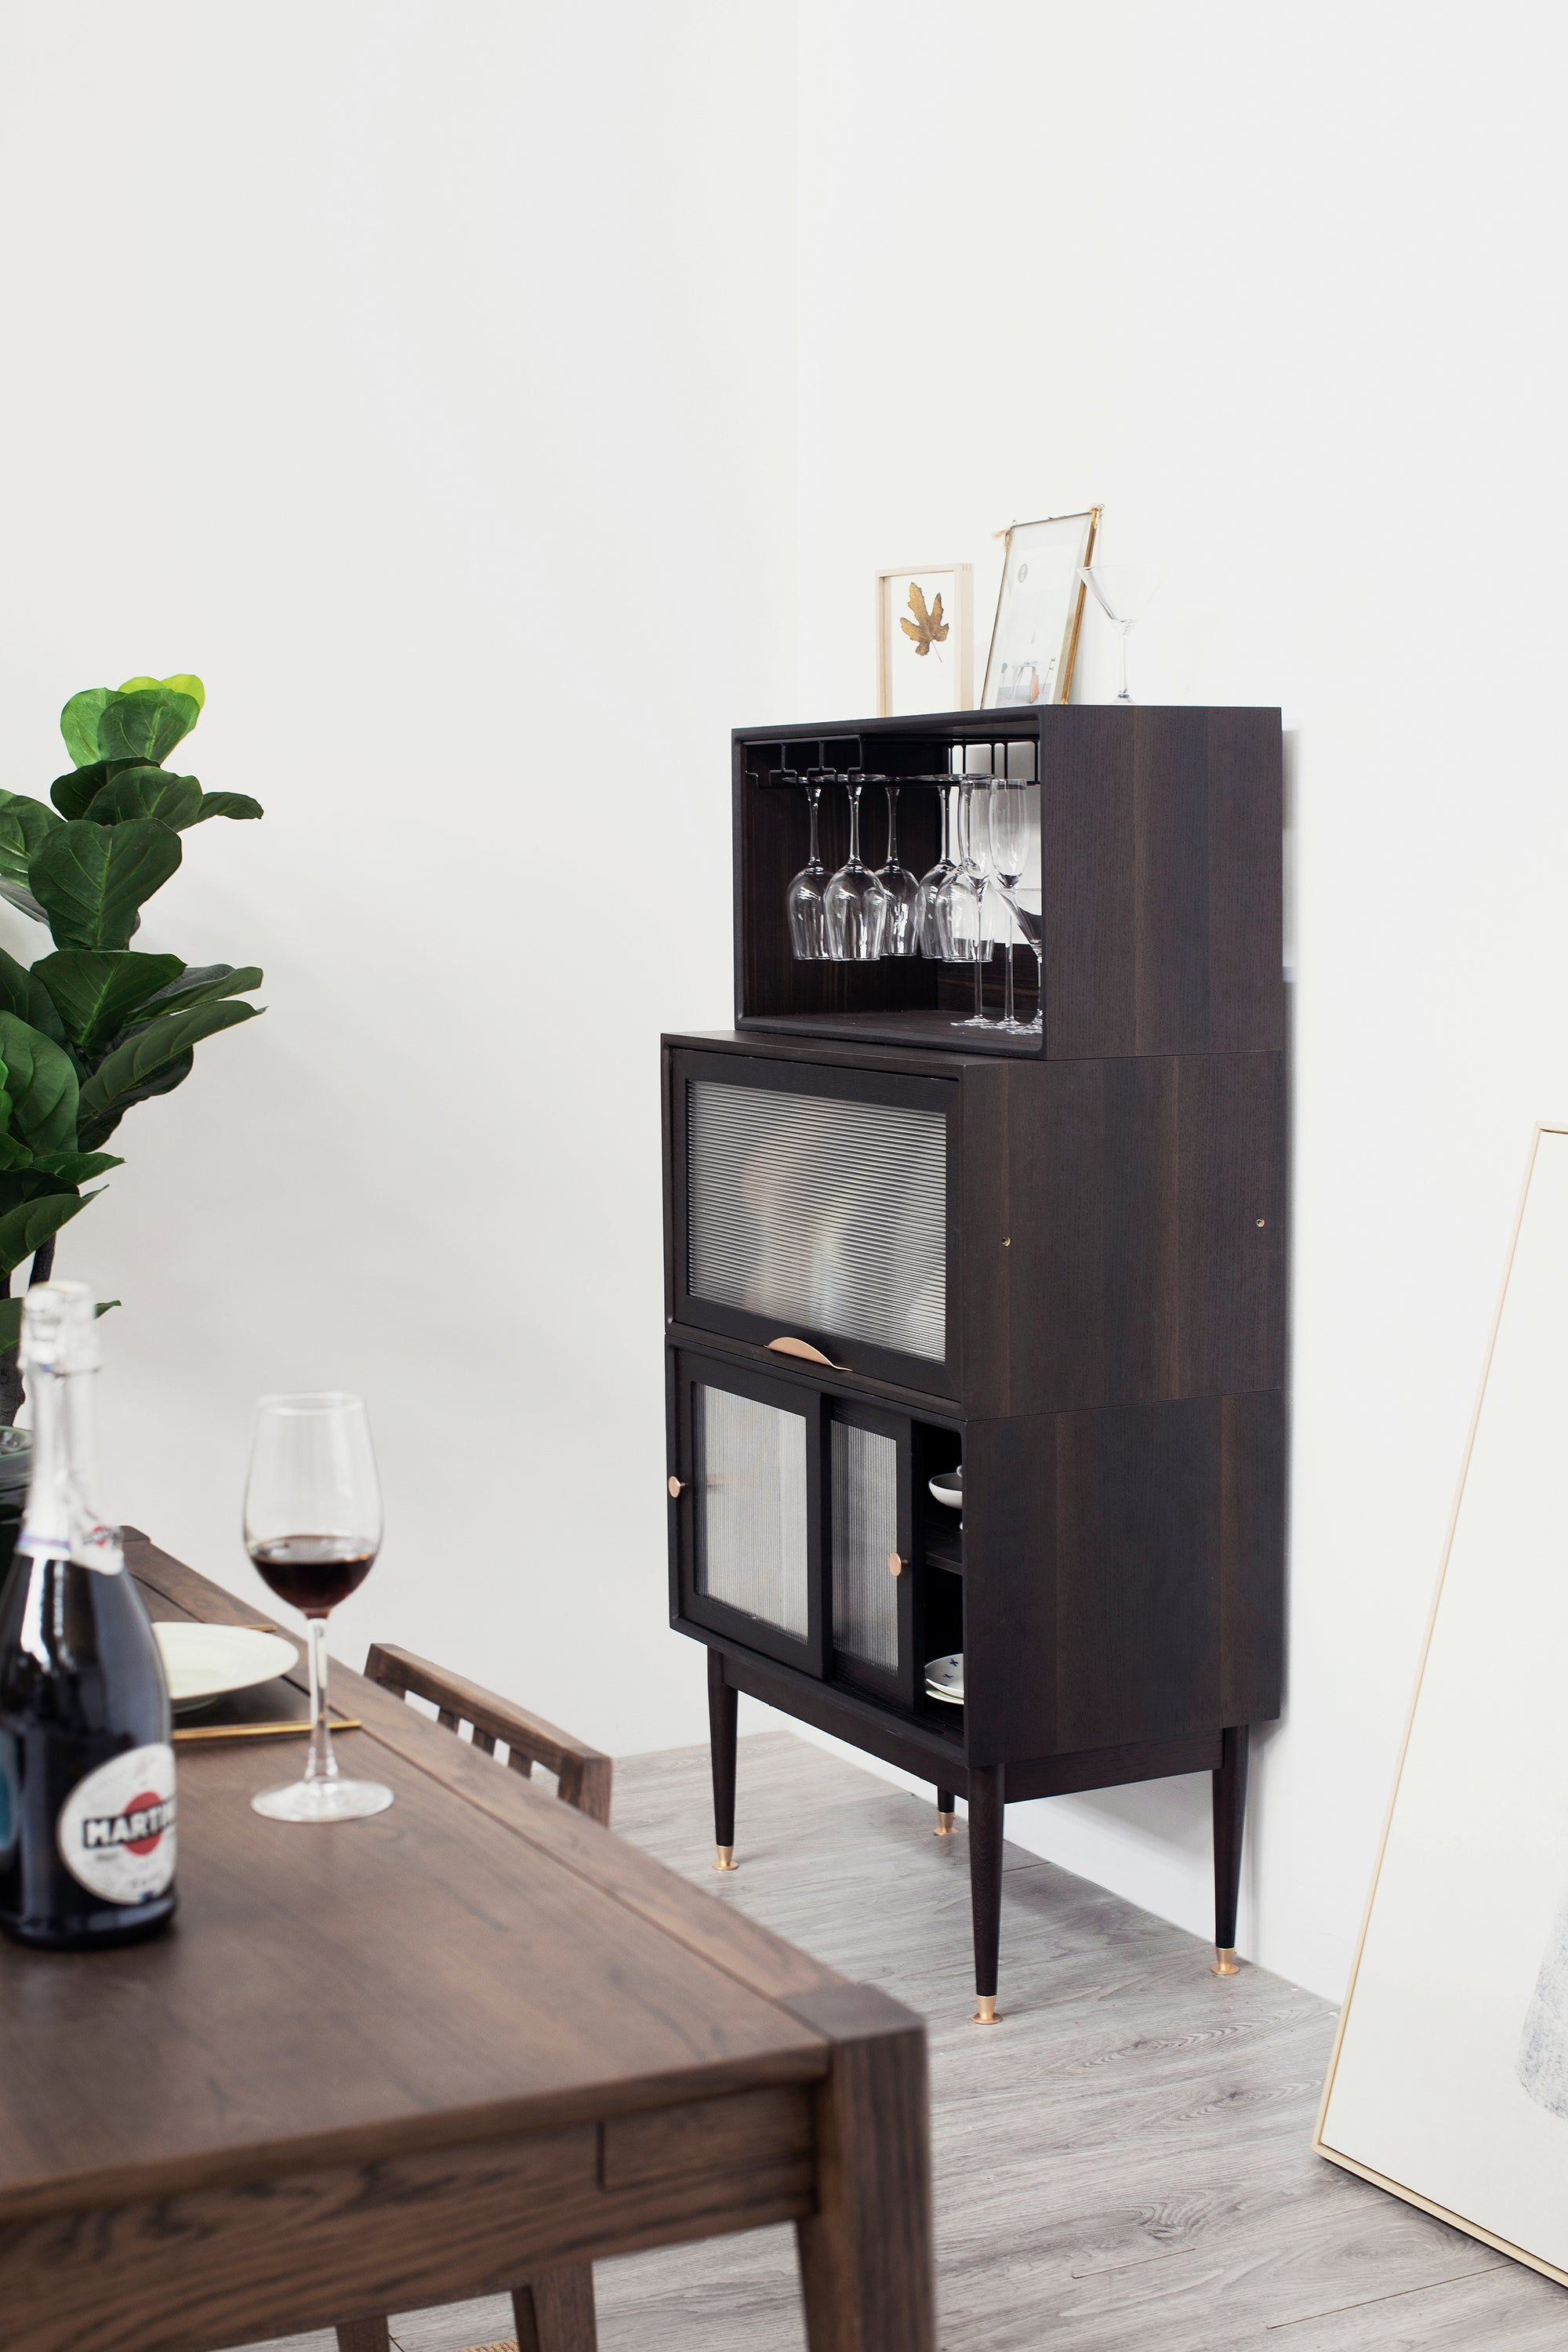 INFINITY CABINETS (WINE CABINET)